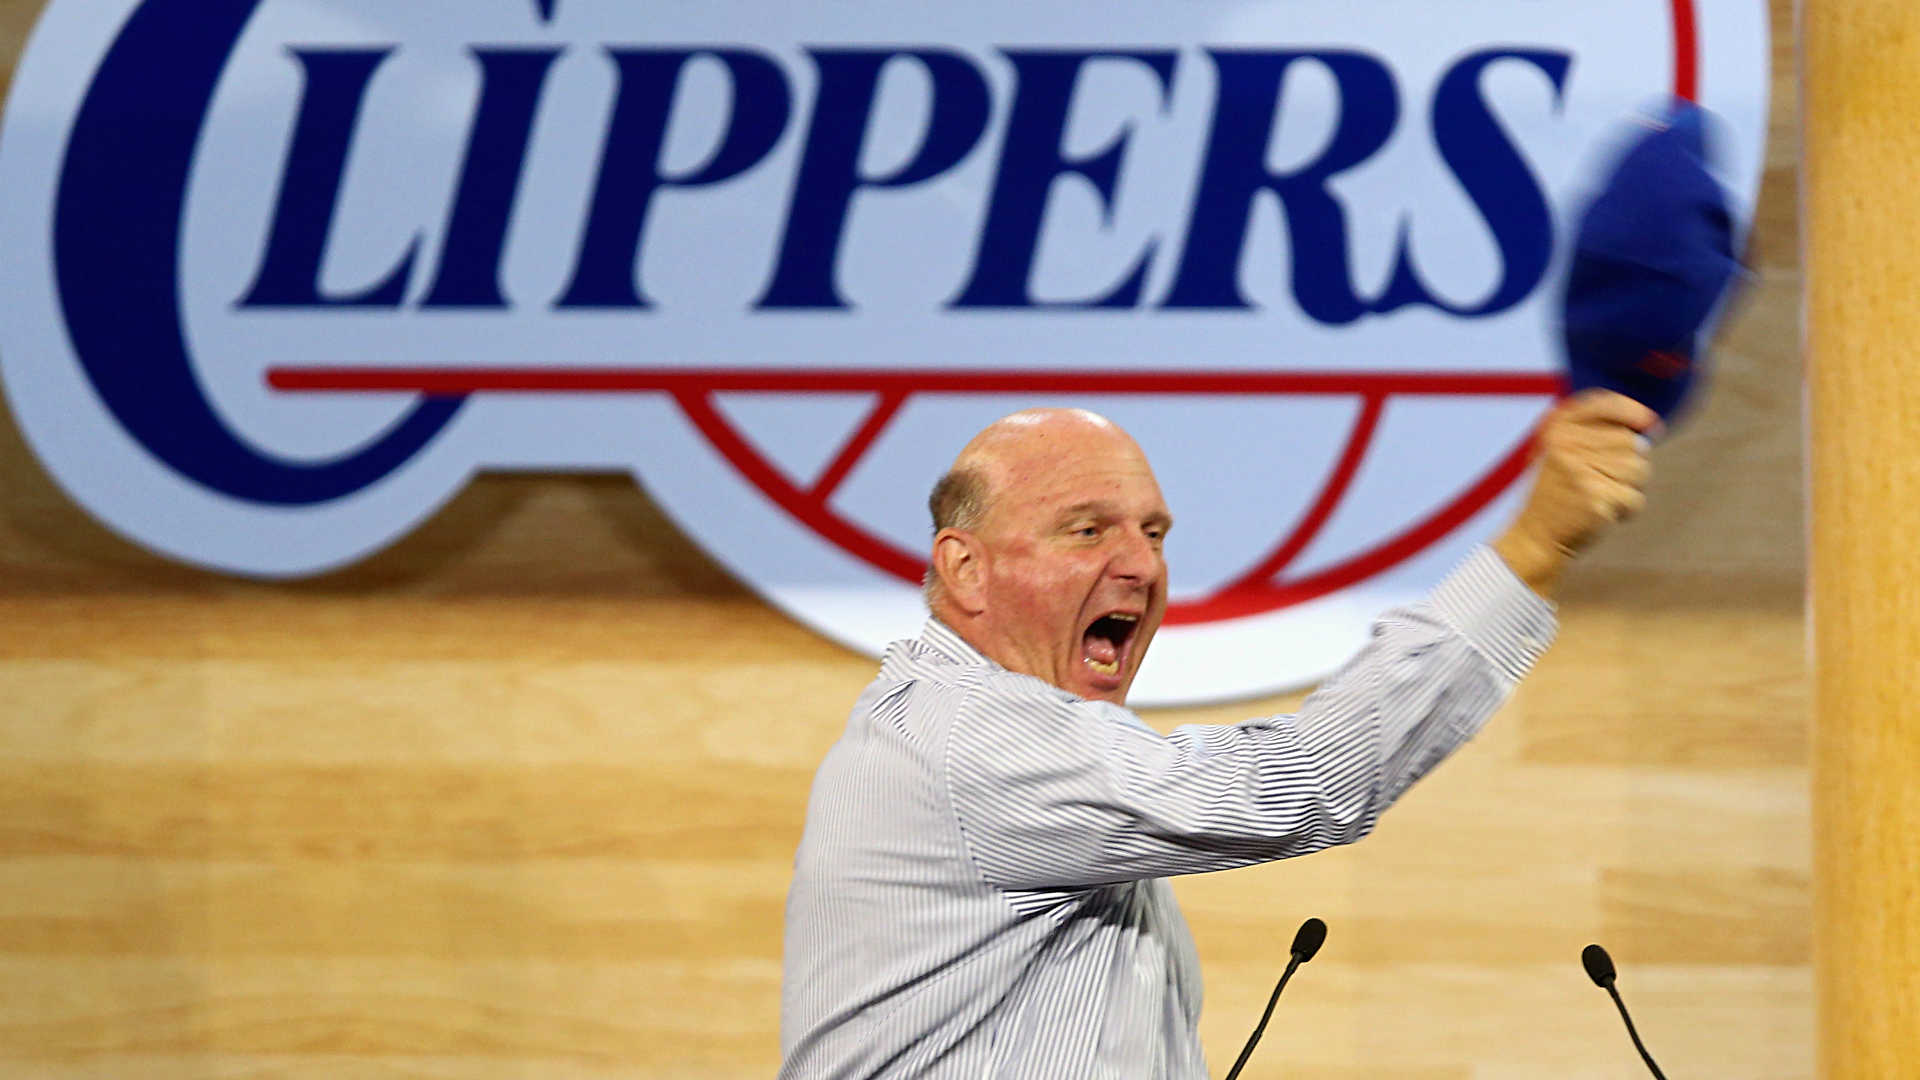 Clippers planning to 'rebrand' in offseason